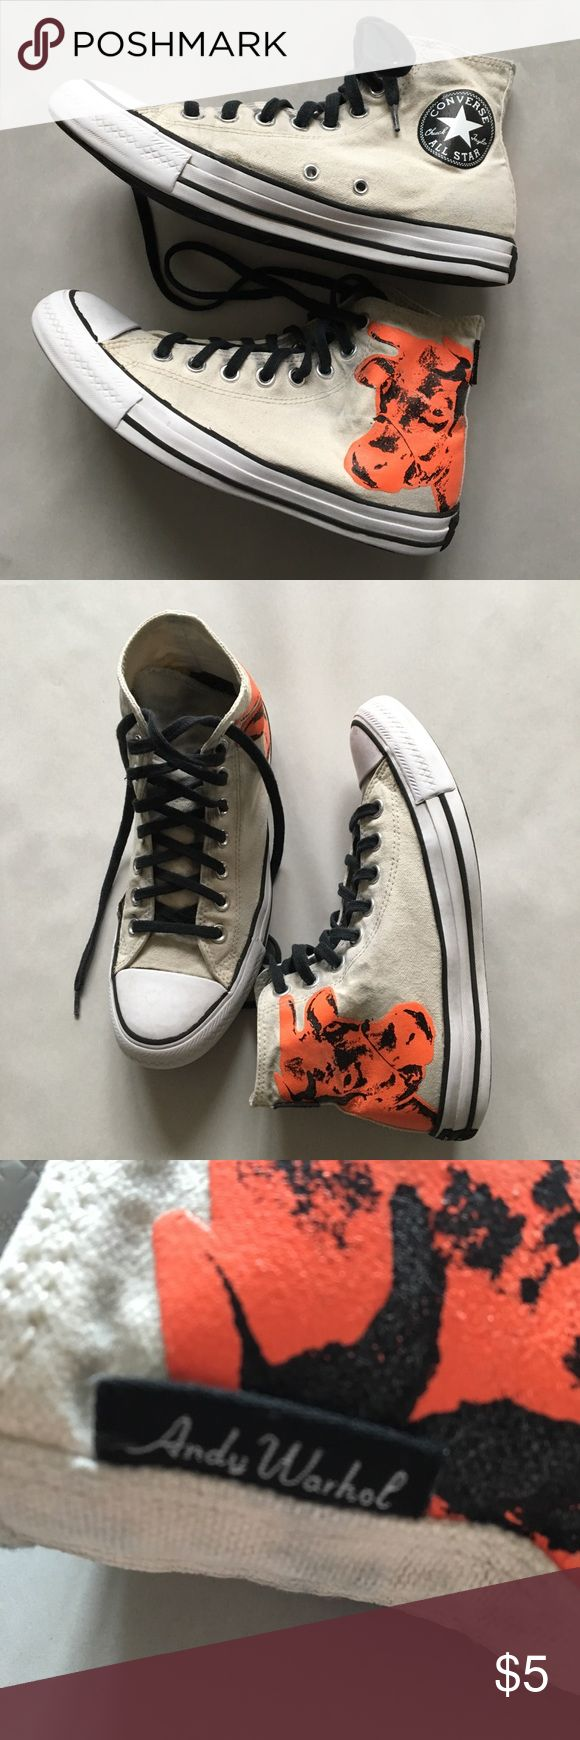 Converse Chucks - Andy Warhol cow design Converse Chucks with Andy Warhol's orange cow. Size is women's 8.5 and thus for men 6.5 respectively. These shoes have been heavily pre-loved by my daughter who is devastated that she has outgrown them. These chucks have been through the wringer by all means but perhaps someone may like this pre-worn old look?? Right shoe has a black ink stain on front. Right shoe also needs some gorilla glue to the sole. Shoes have been washed in my German Miele…